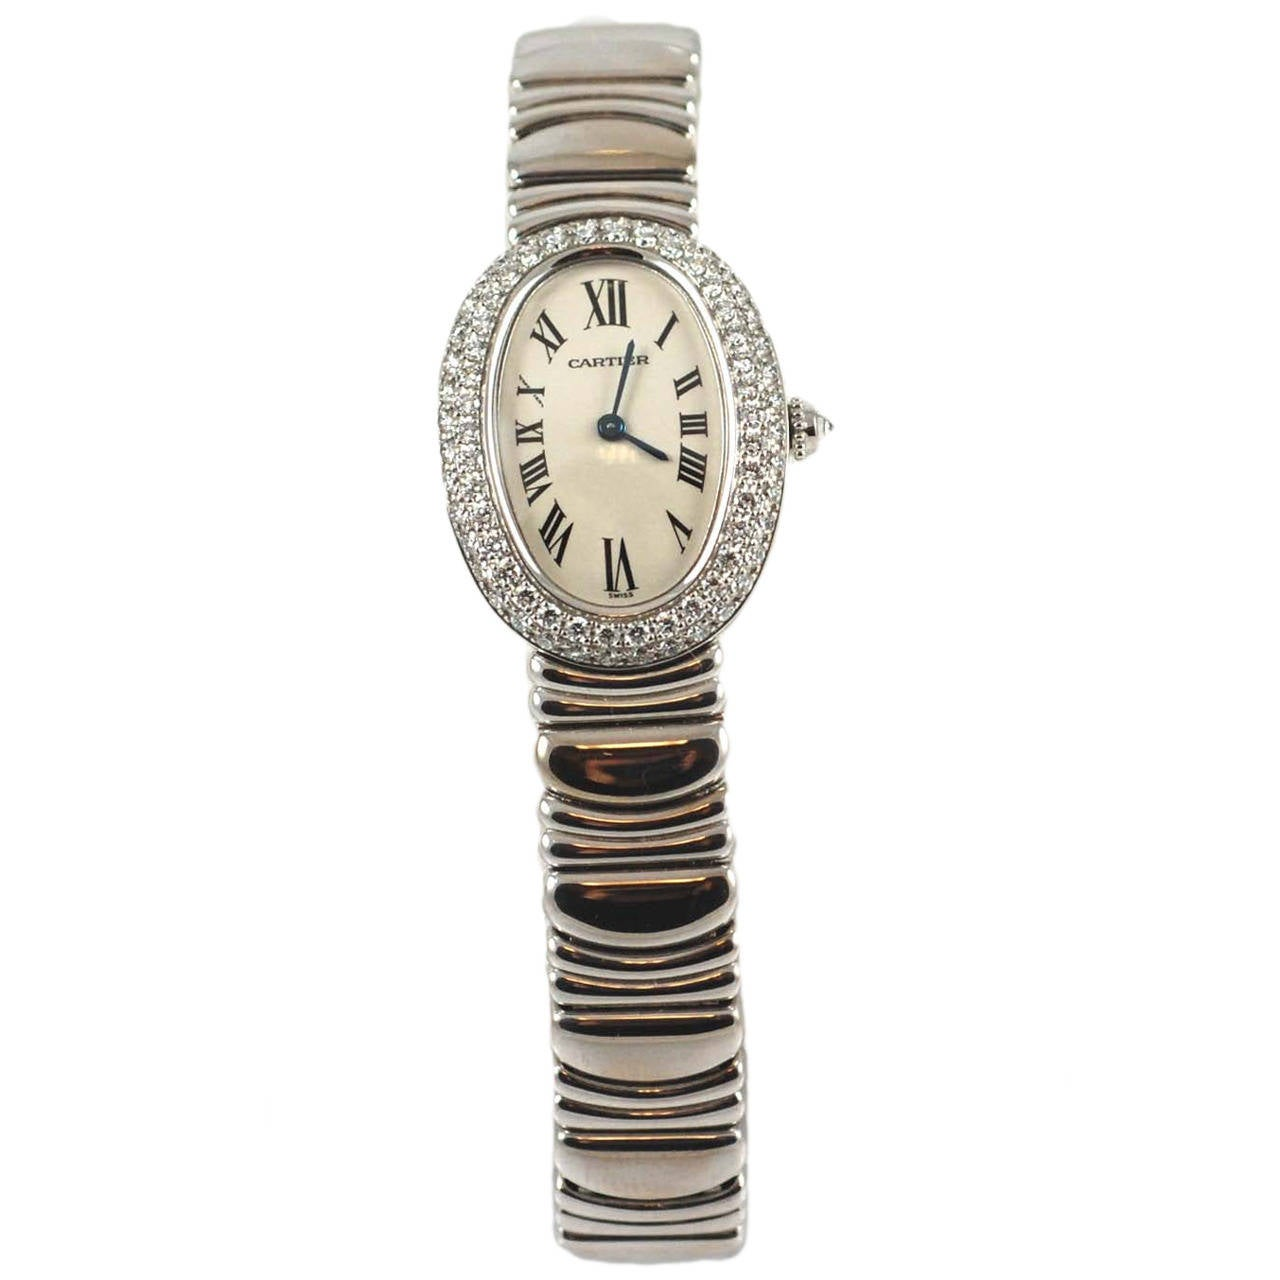 New Cartier Lady's White Gold and Diamond Baignoire Bracelet Watch